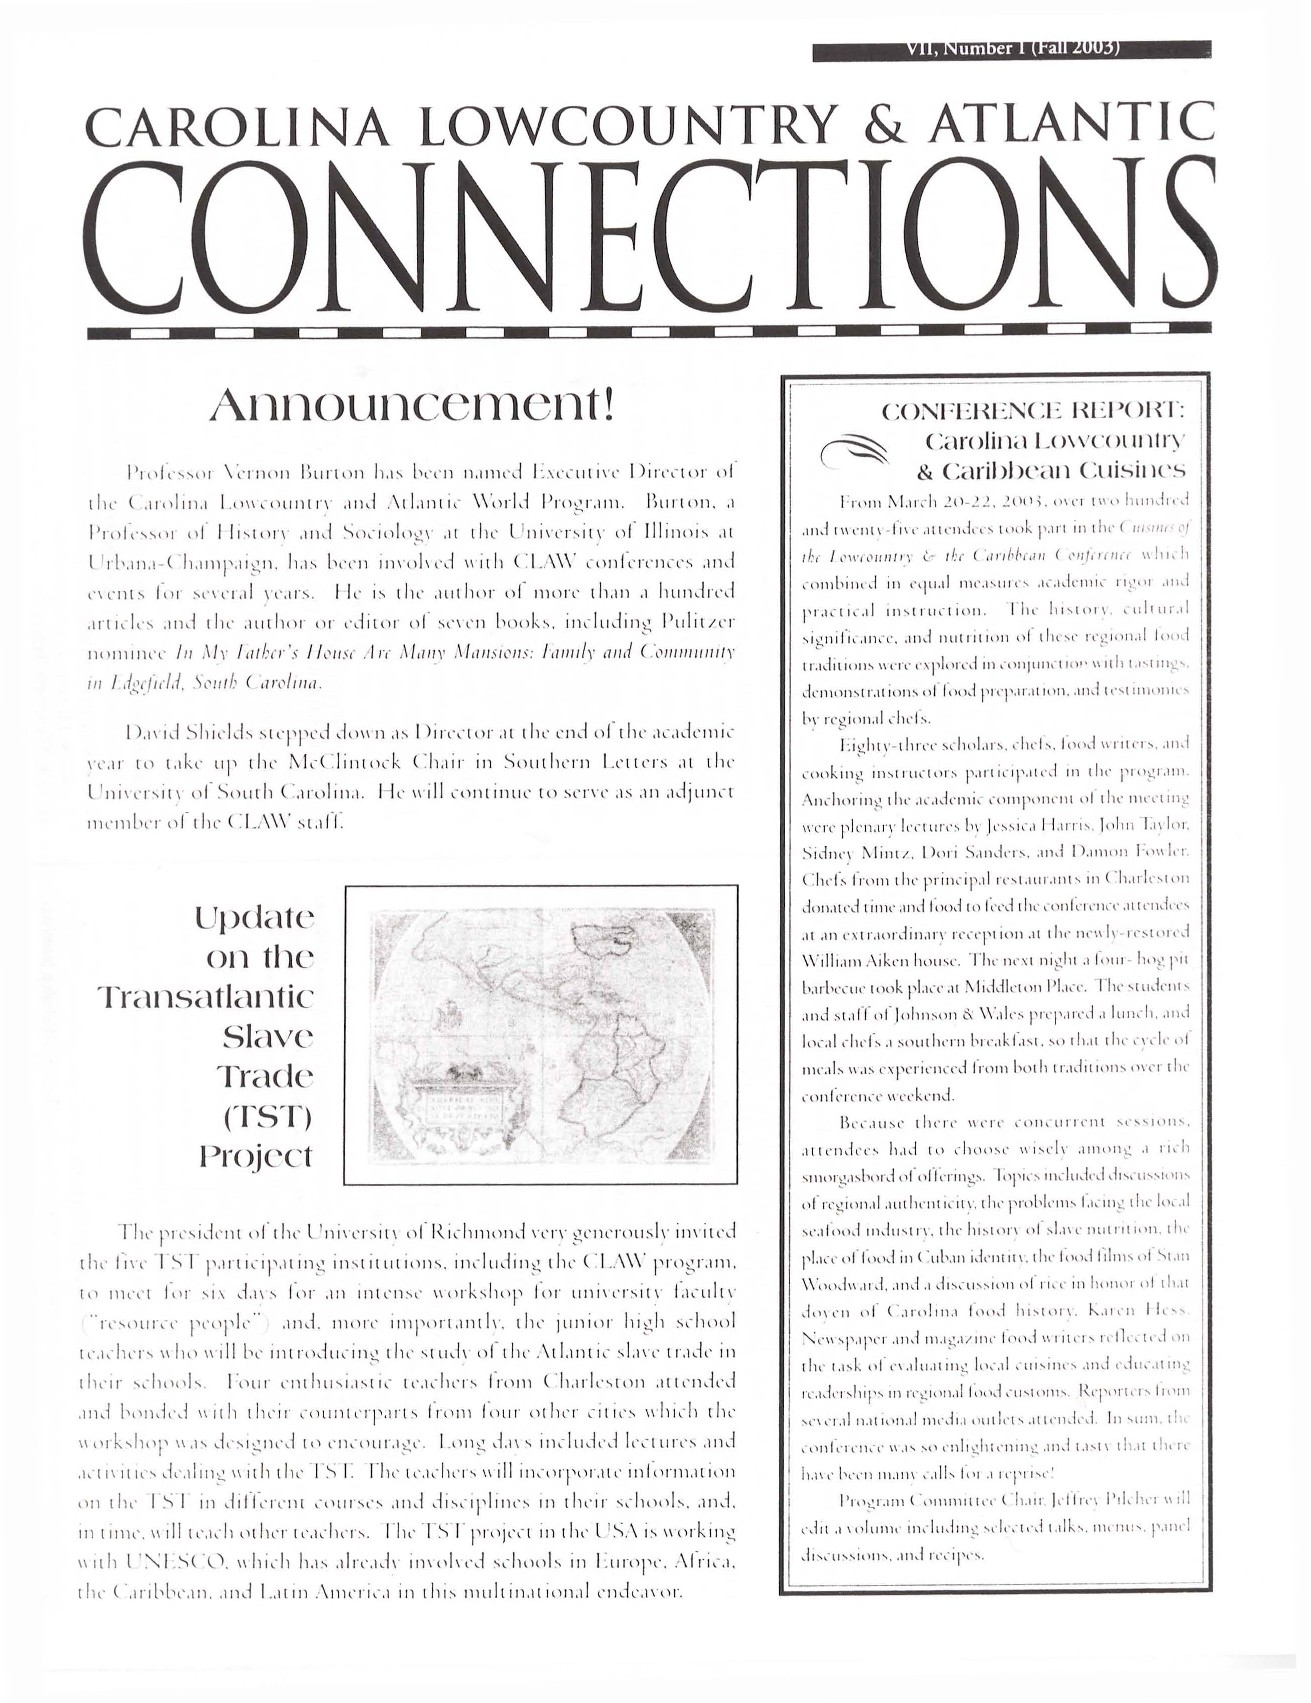 CLAW Newsletter Volume 07, Number 1